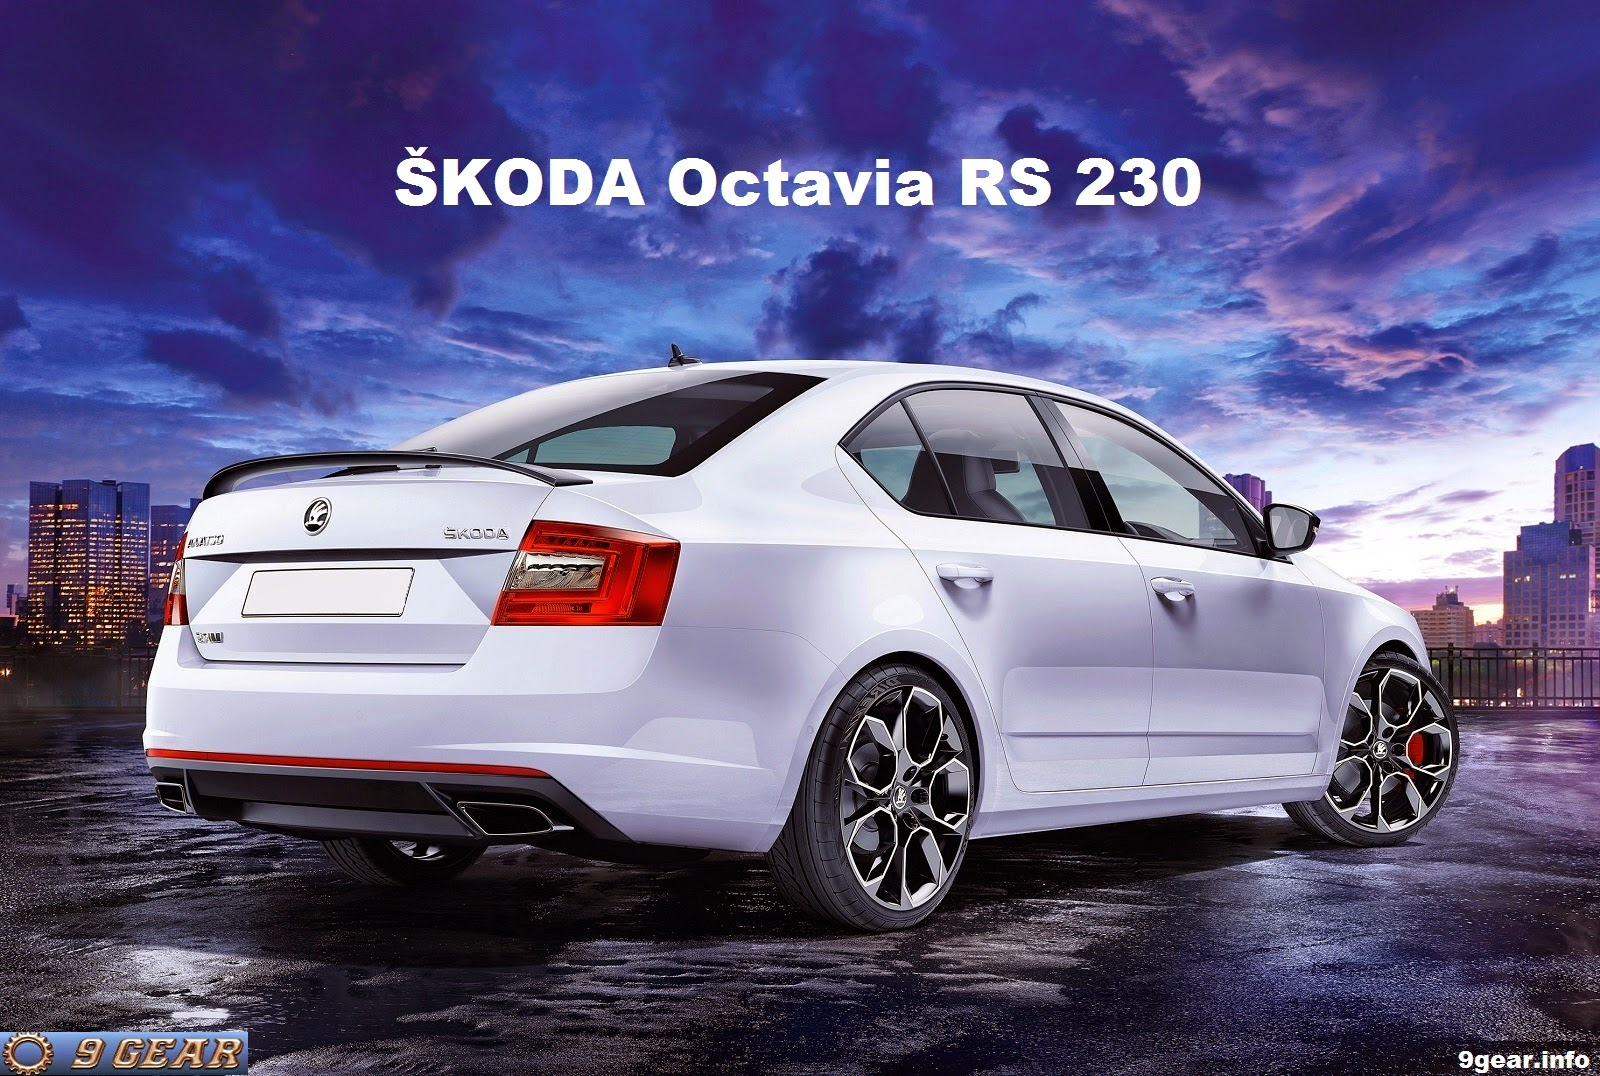 skoda octavia rs 230 special edition announced car reviews new car pictures for 2018 2019. Black Bedroom Furniture Sets. Home Design Ideas